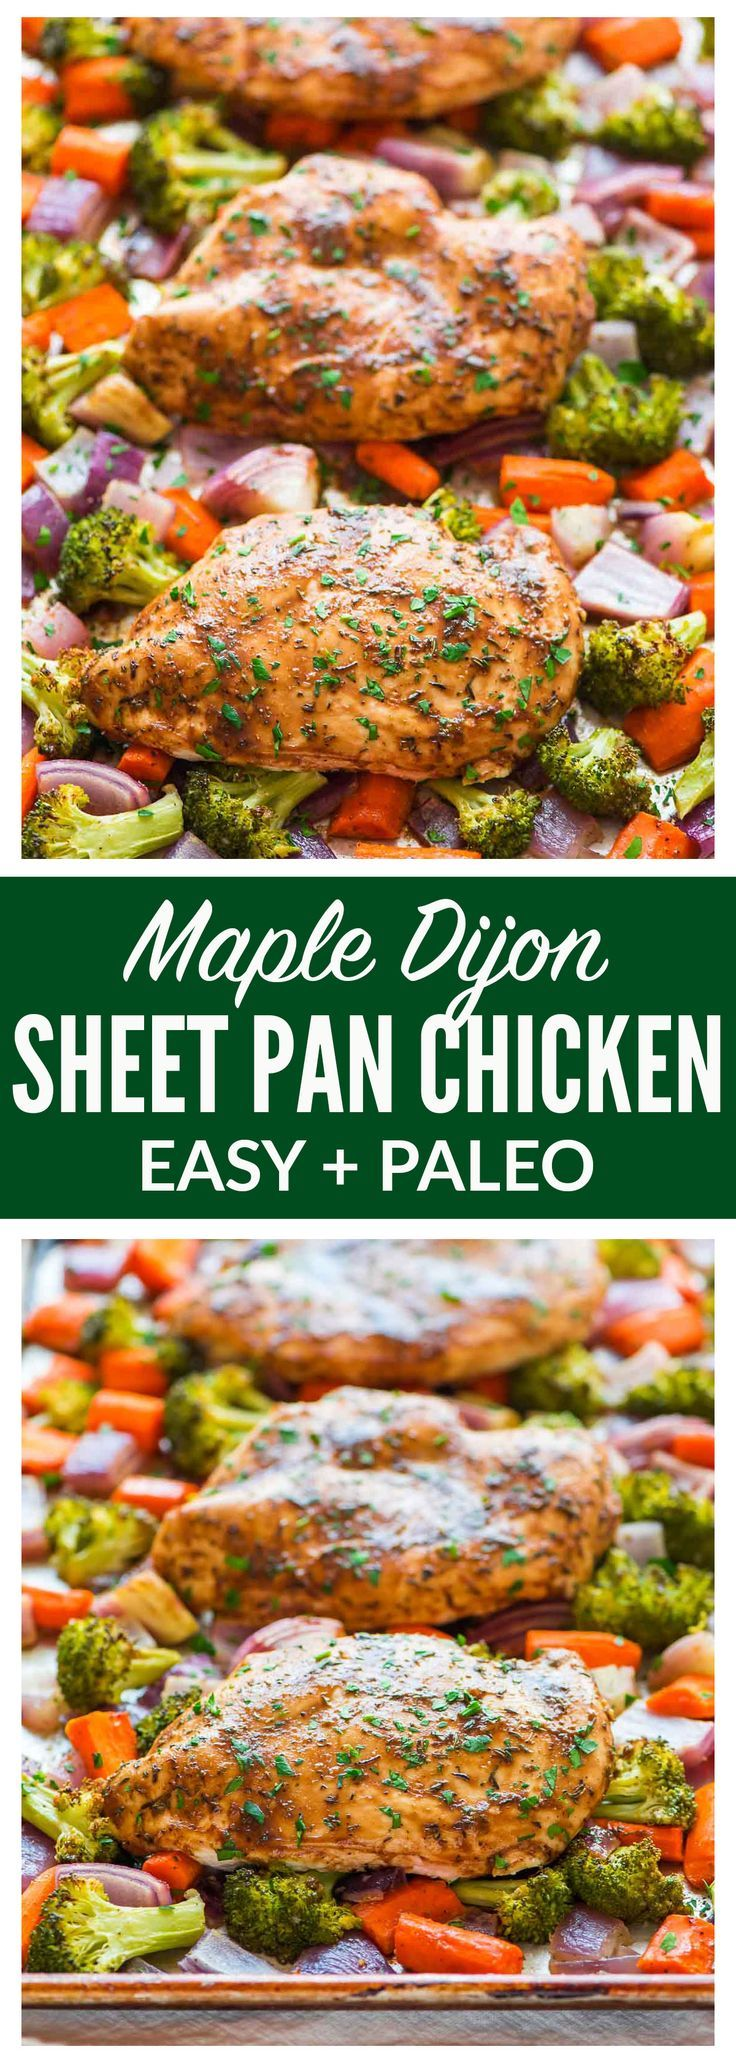 Maple Dijon Chicken and Vegetables. An easy, healthy dinner recipe that bakes on a single sheet pan for easy clean up! The chicken is juicy and tender and the maple Dijon glaze is absolutely delicious. {Gluten Free, Paleo, and Whole 30 friendly} Recipe at wellplated.com | @wellplated